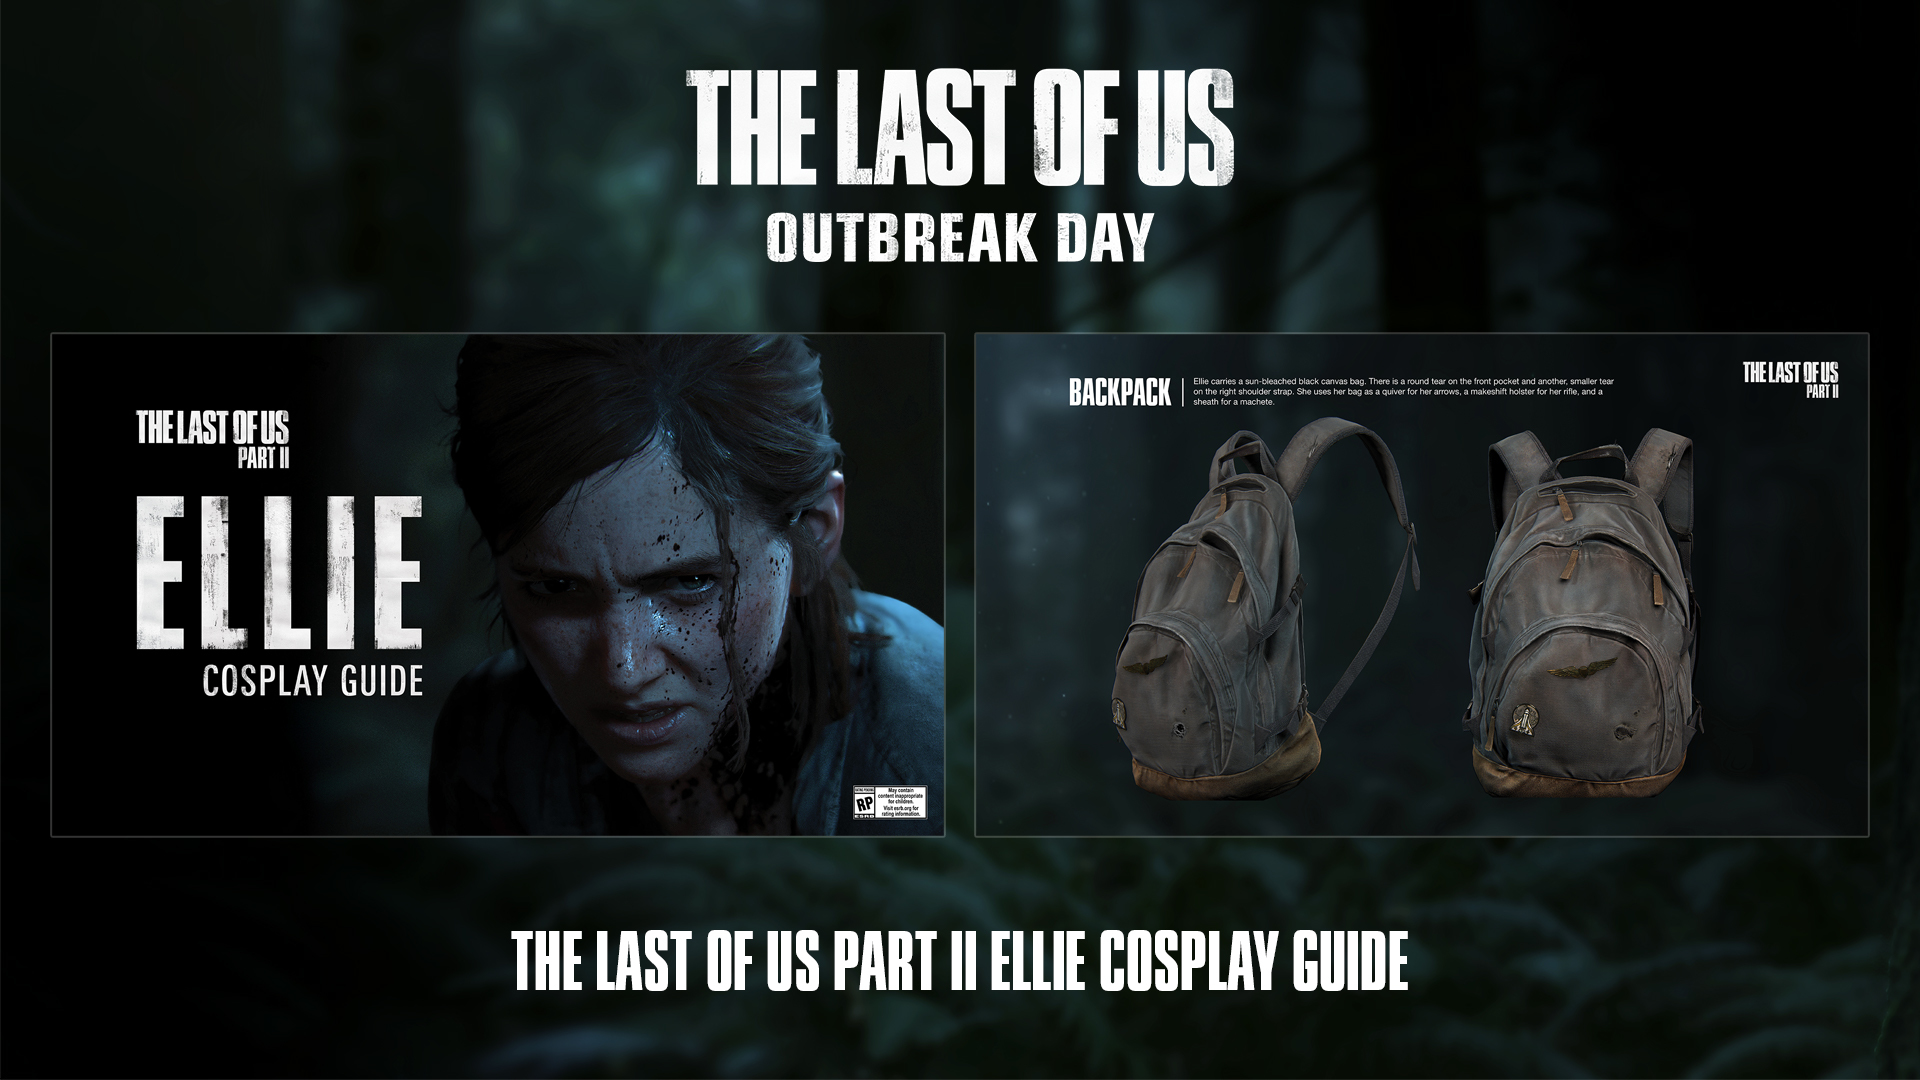 The Last of Us Part II: Outbreak Day 2019 - Image 5